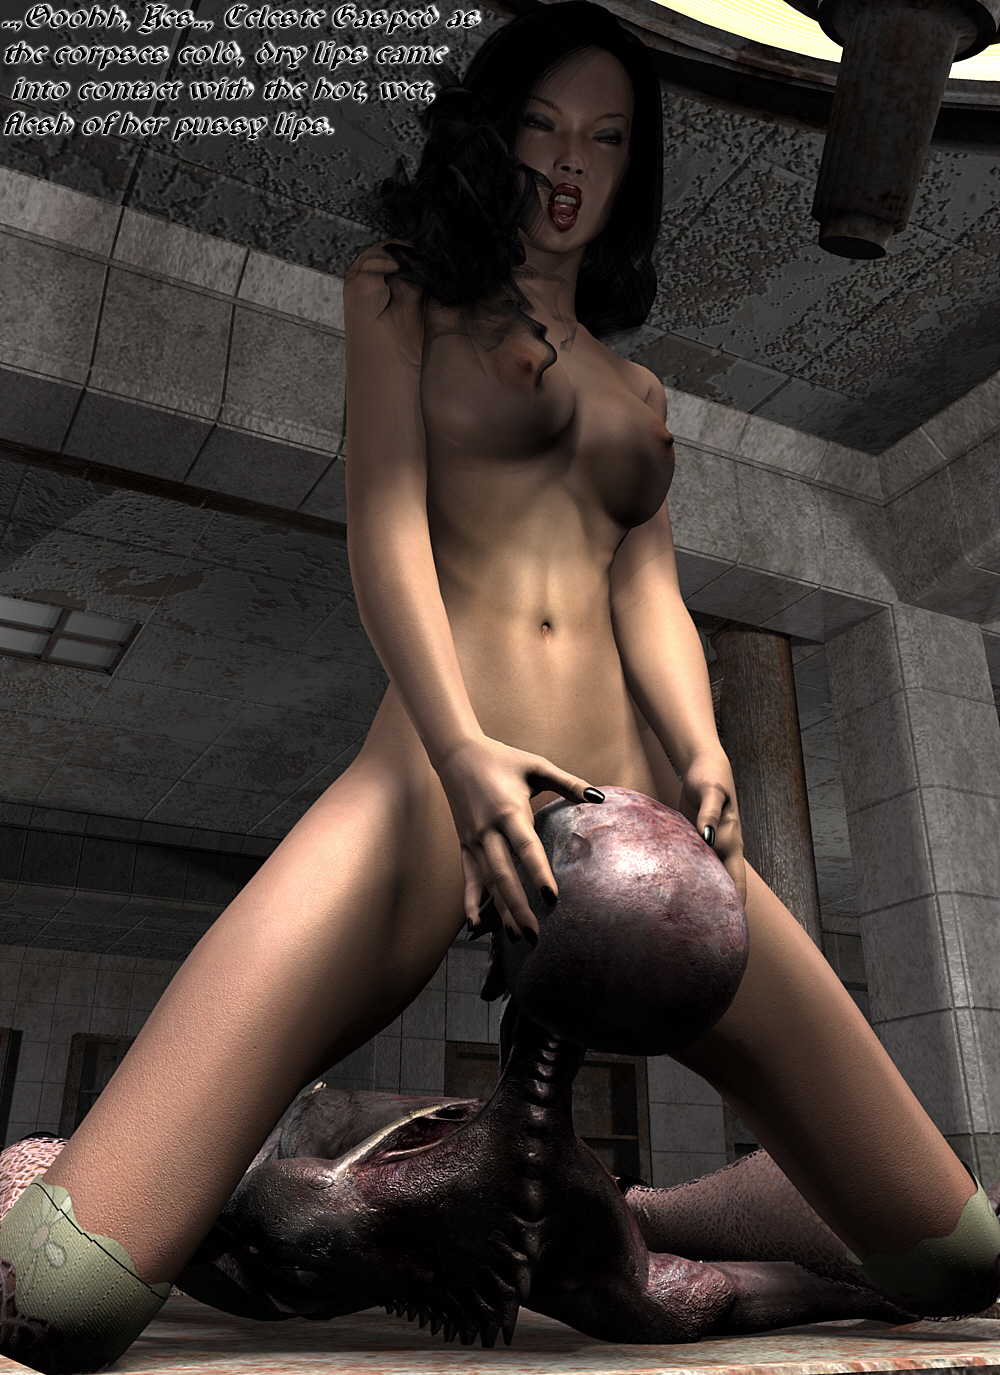 Toons 3d monster sex vedios download porn picture